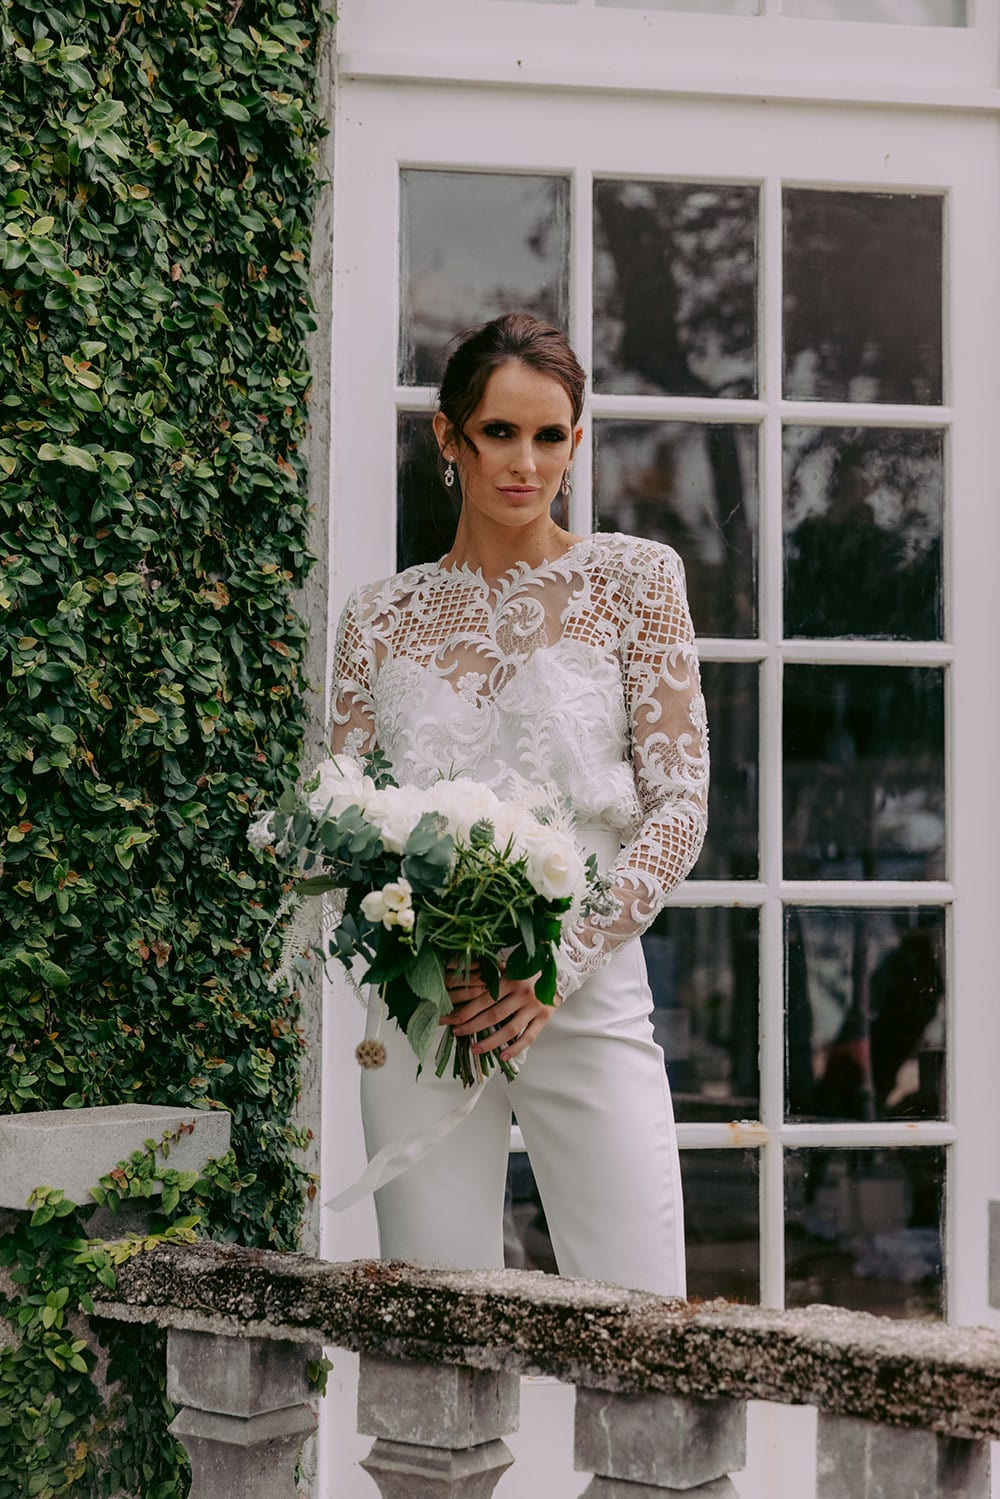 Aurora Wedding Trousers and Blouse from Vinka Design - Elegantly tailored trouser combined with a beautiful lace blouse for the Modern Bride. The blouse features a high neck and low back, with in-built camisole, fitted sleeves, & pearl buttons. Model wearing Trousers and Blouse showing front detail of blouse outside Heritage building in Clevedon Gardens, near Auckland.